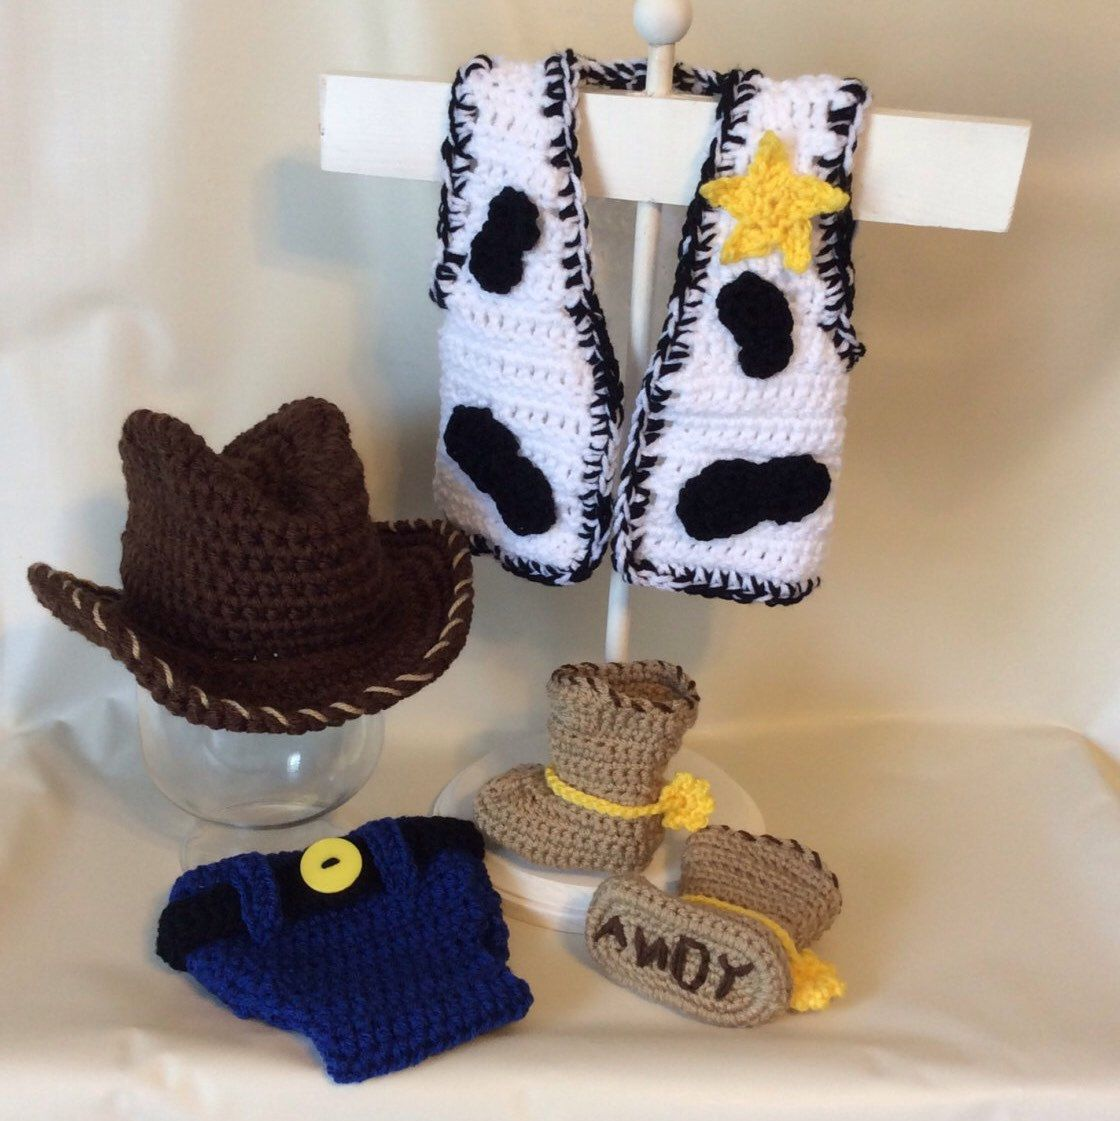 6a718b44d7ba4 Crochet Toy Story Woody Baby Photo Prop Ropa Bebe